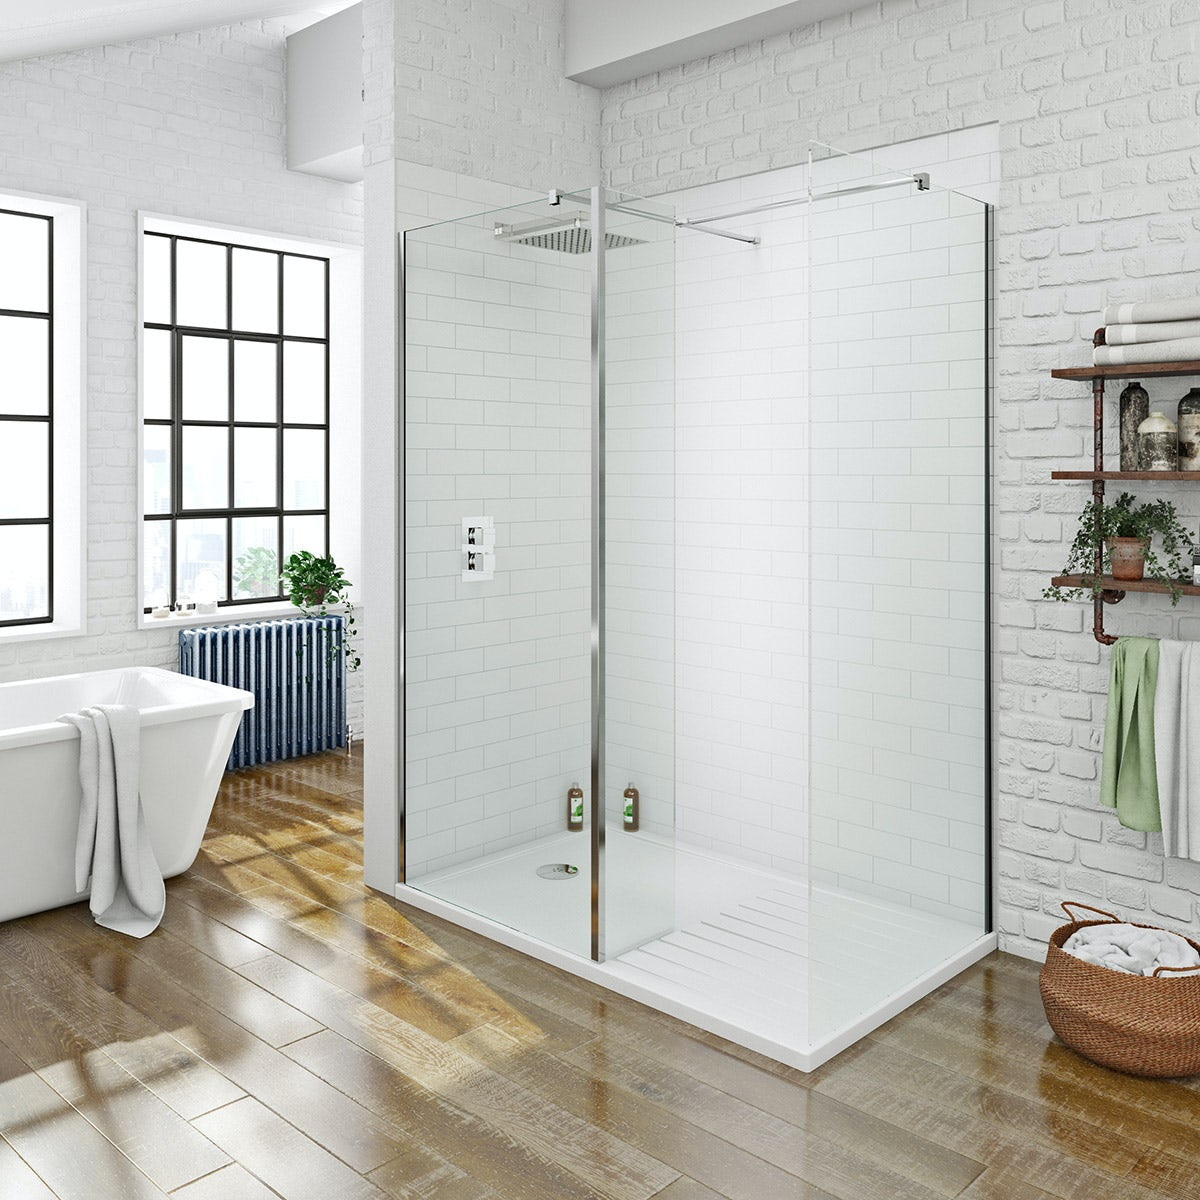 Mode arte suite with luxury 8mm walk in shower enclosure for Walk in shower plans and specs